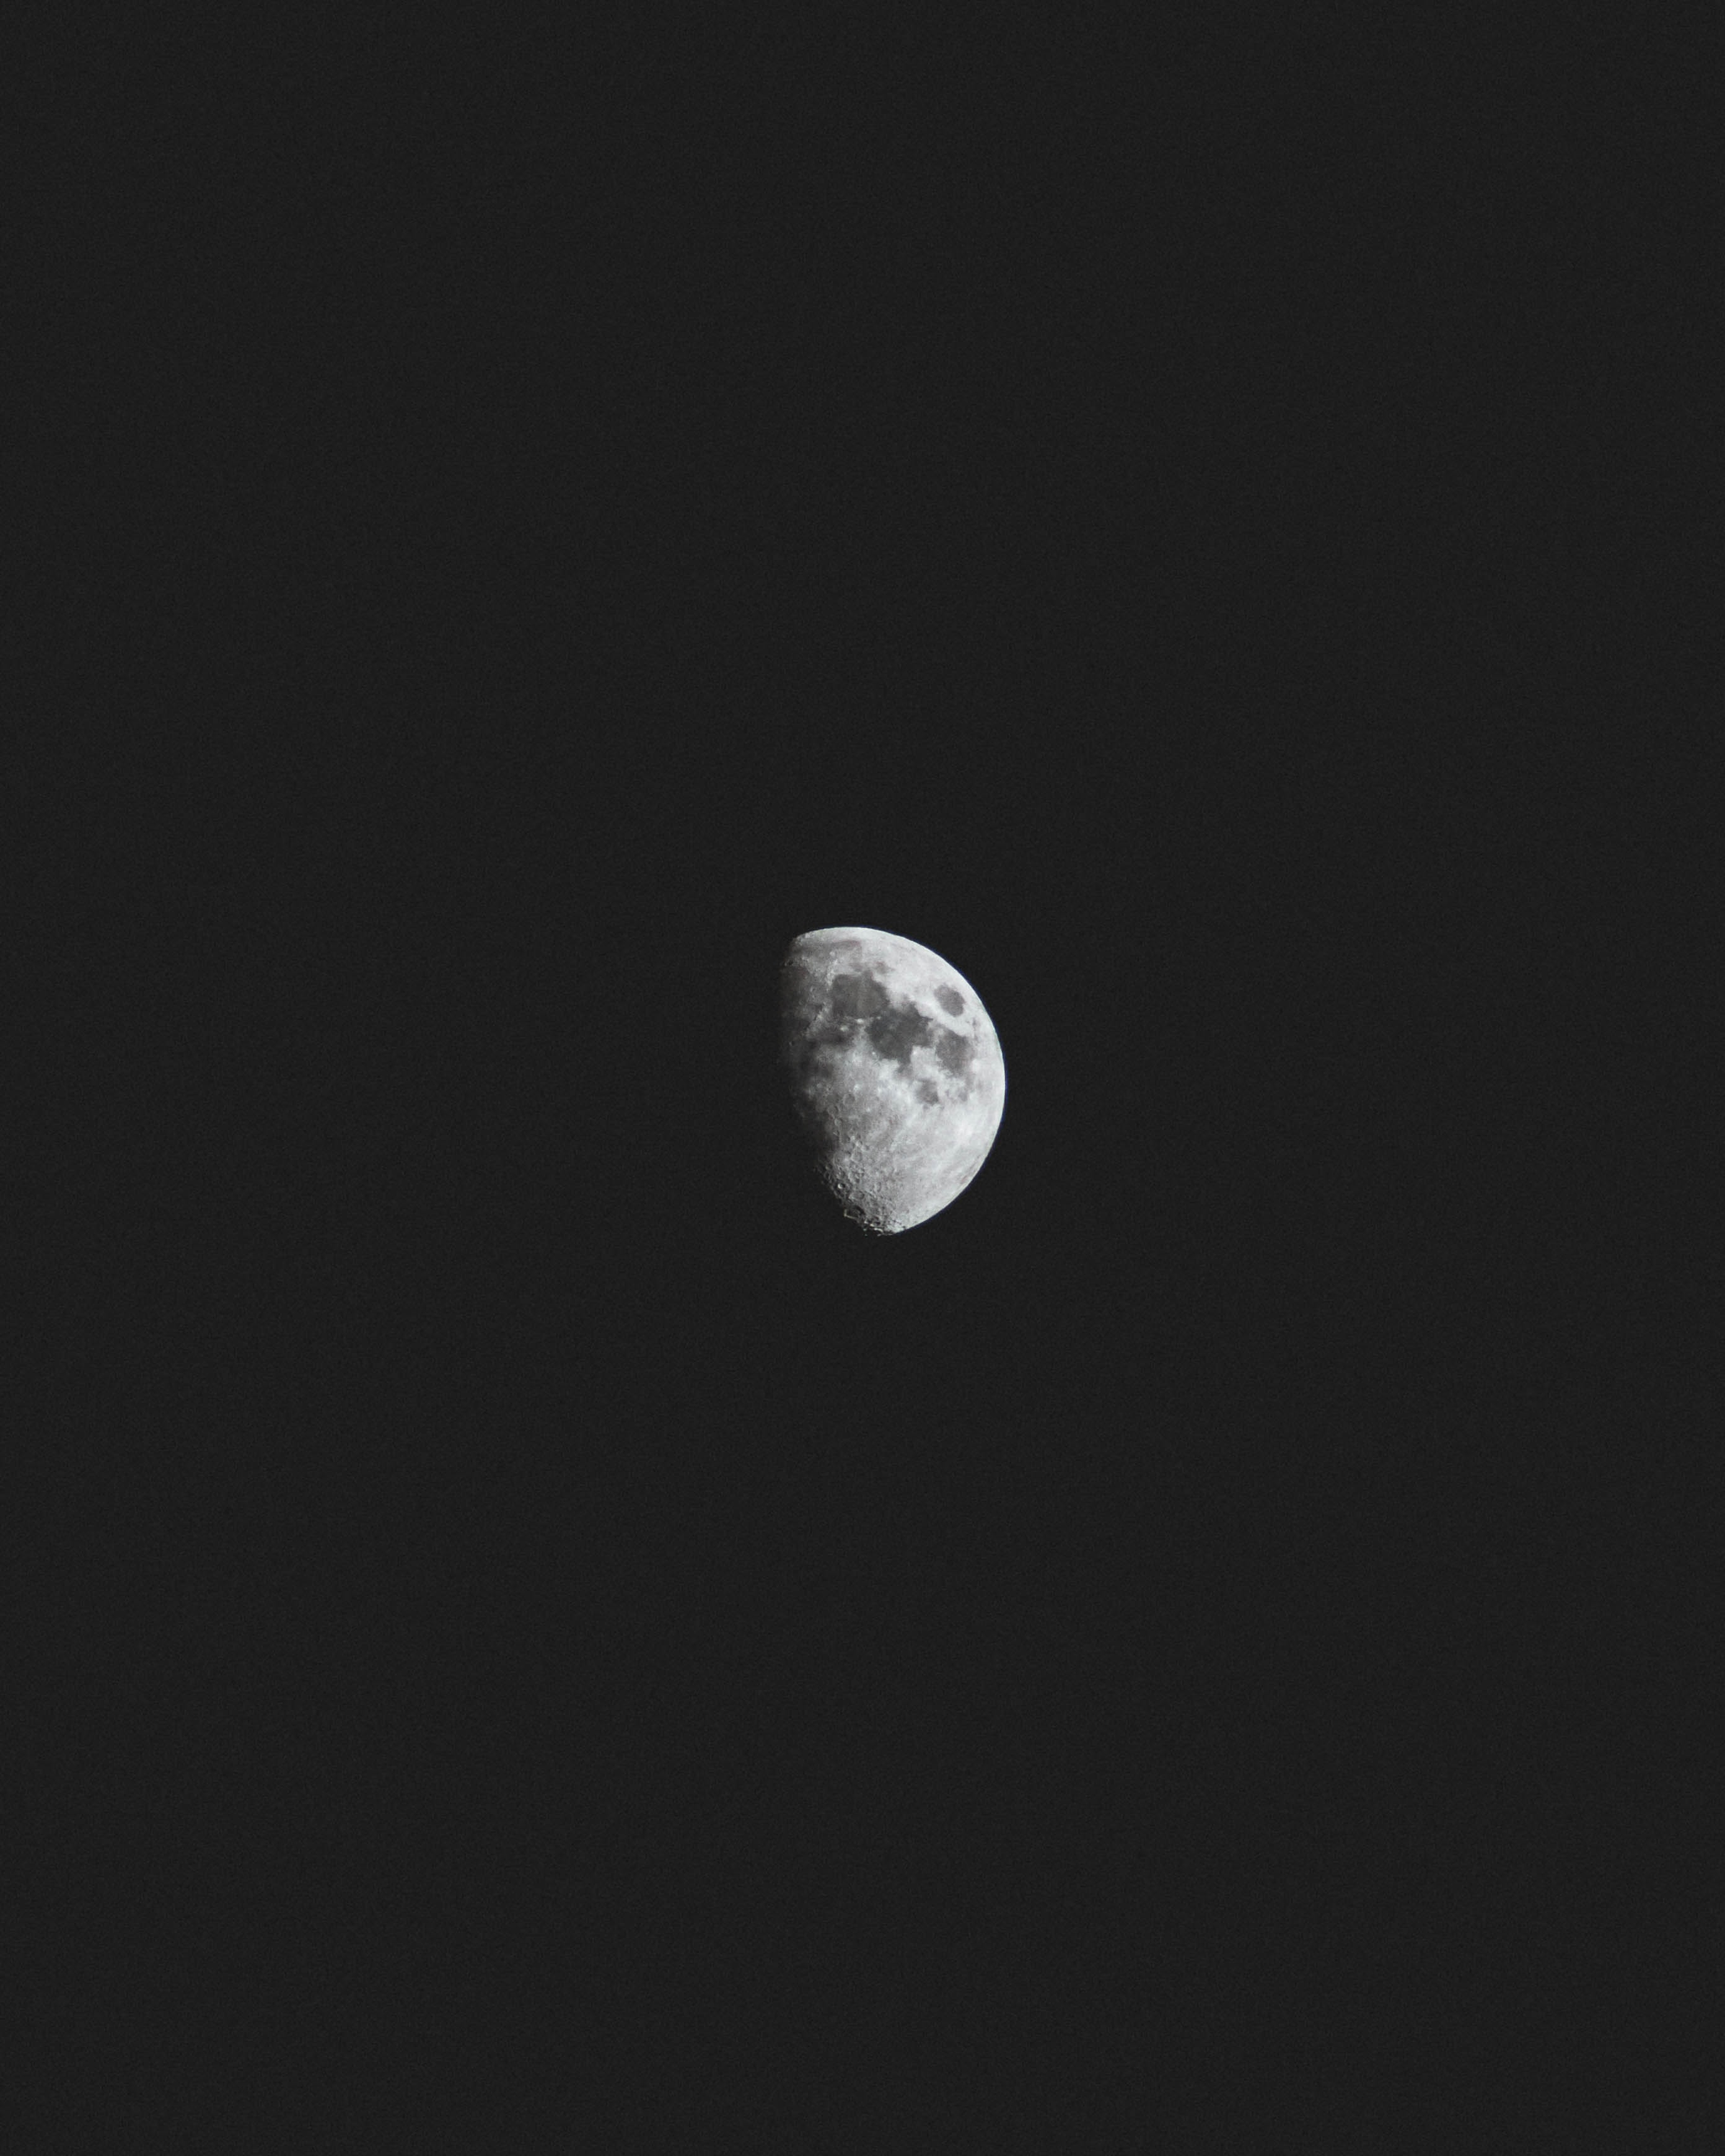 Dark spots visible on a half-moon against a black night sky